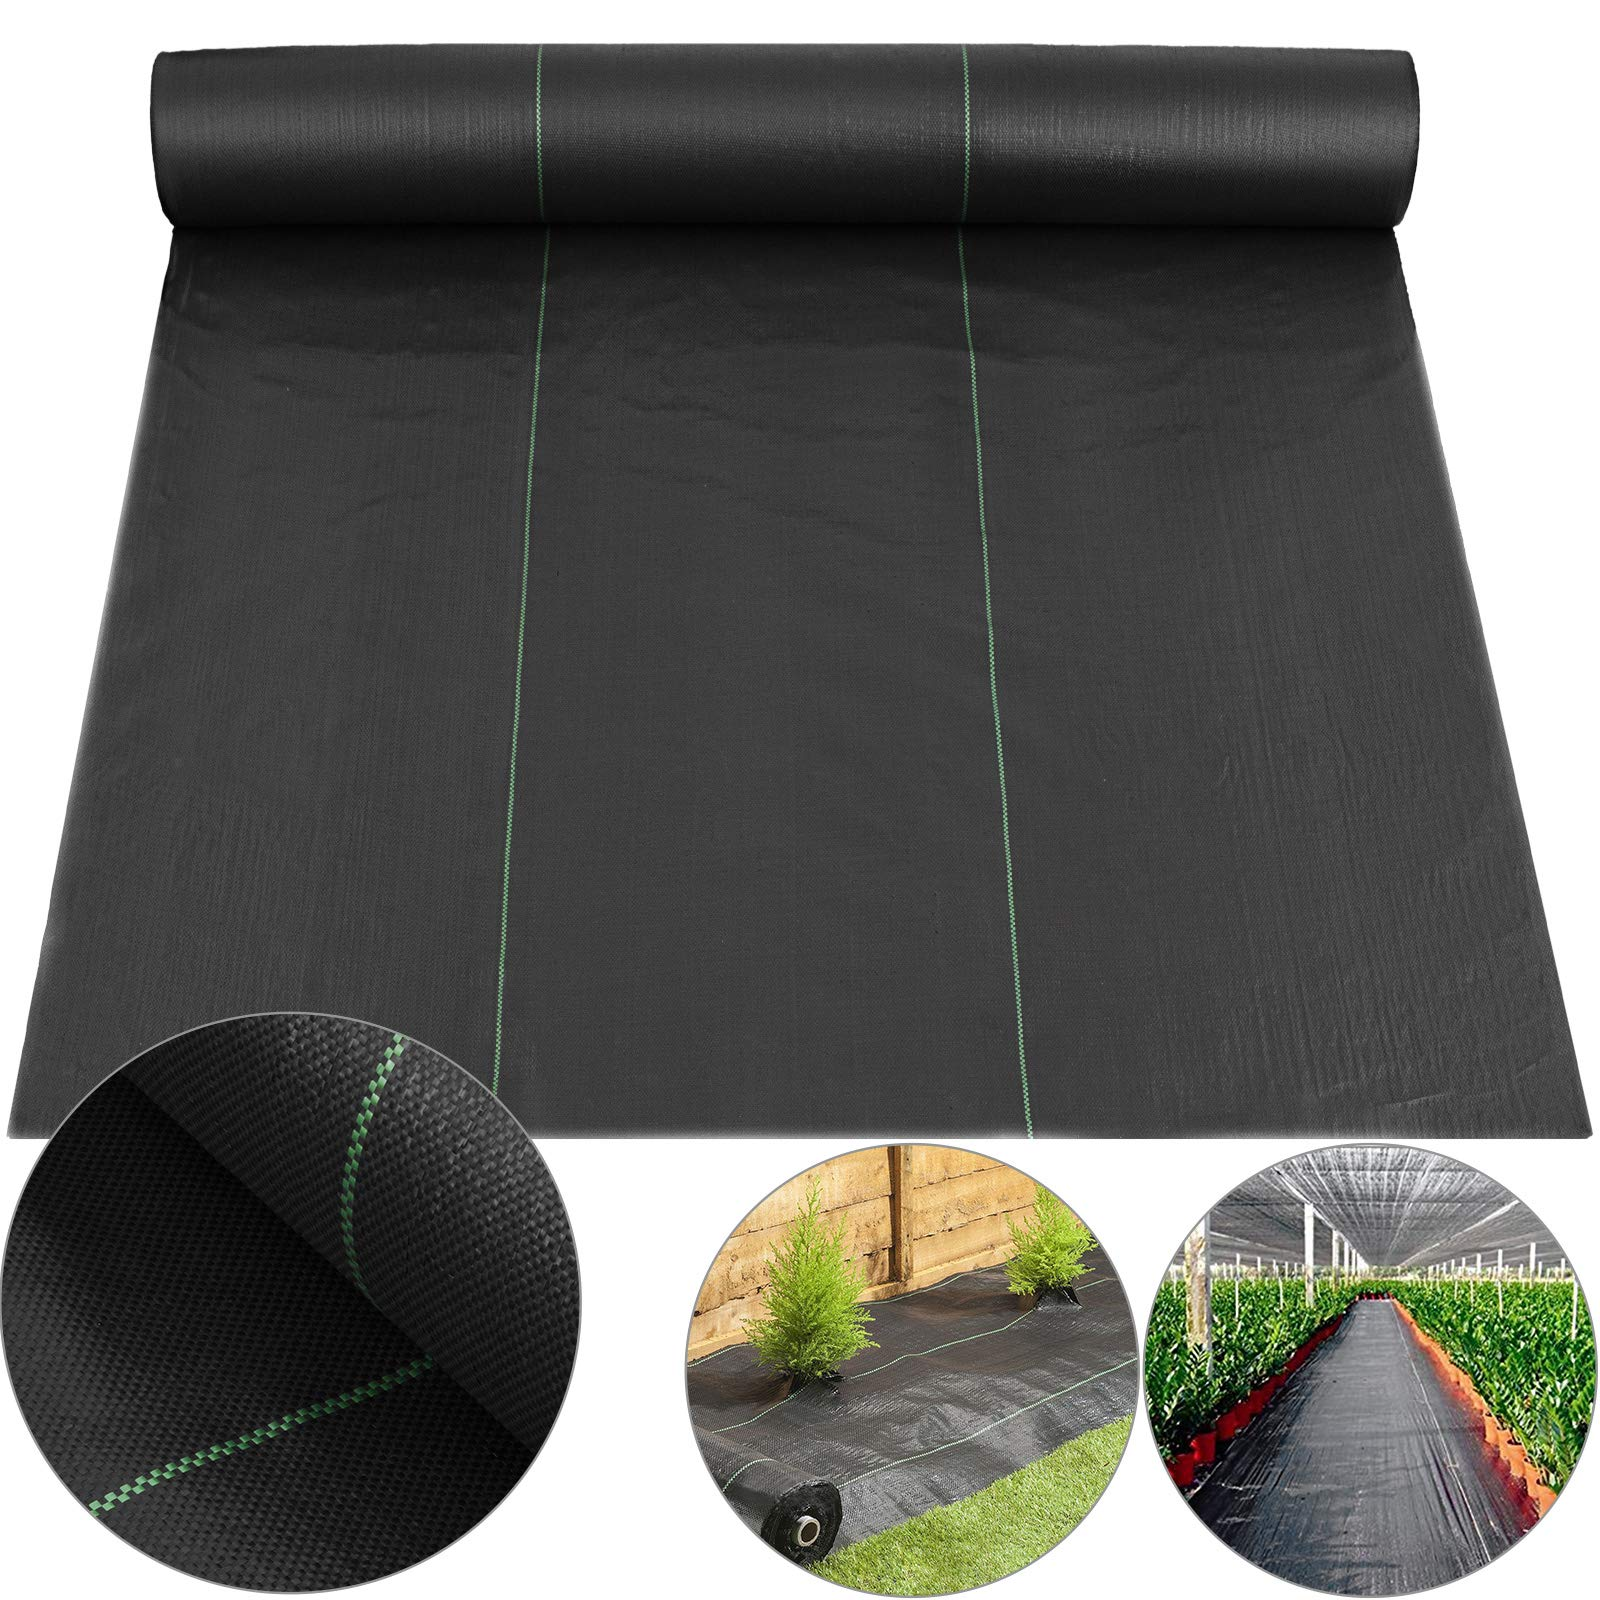 Happybuy Landscape Fabric 6.5ft x 330ft 3.2oz Garden Weed Barrier Heavy Duty Polypropylene Black Ground Cover Weed Barrier for Soil Erosion Control Weed Reduce by Happybuy